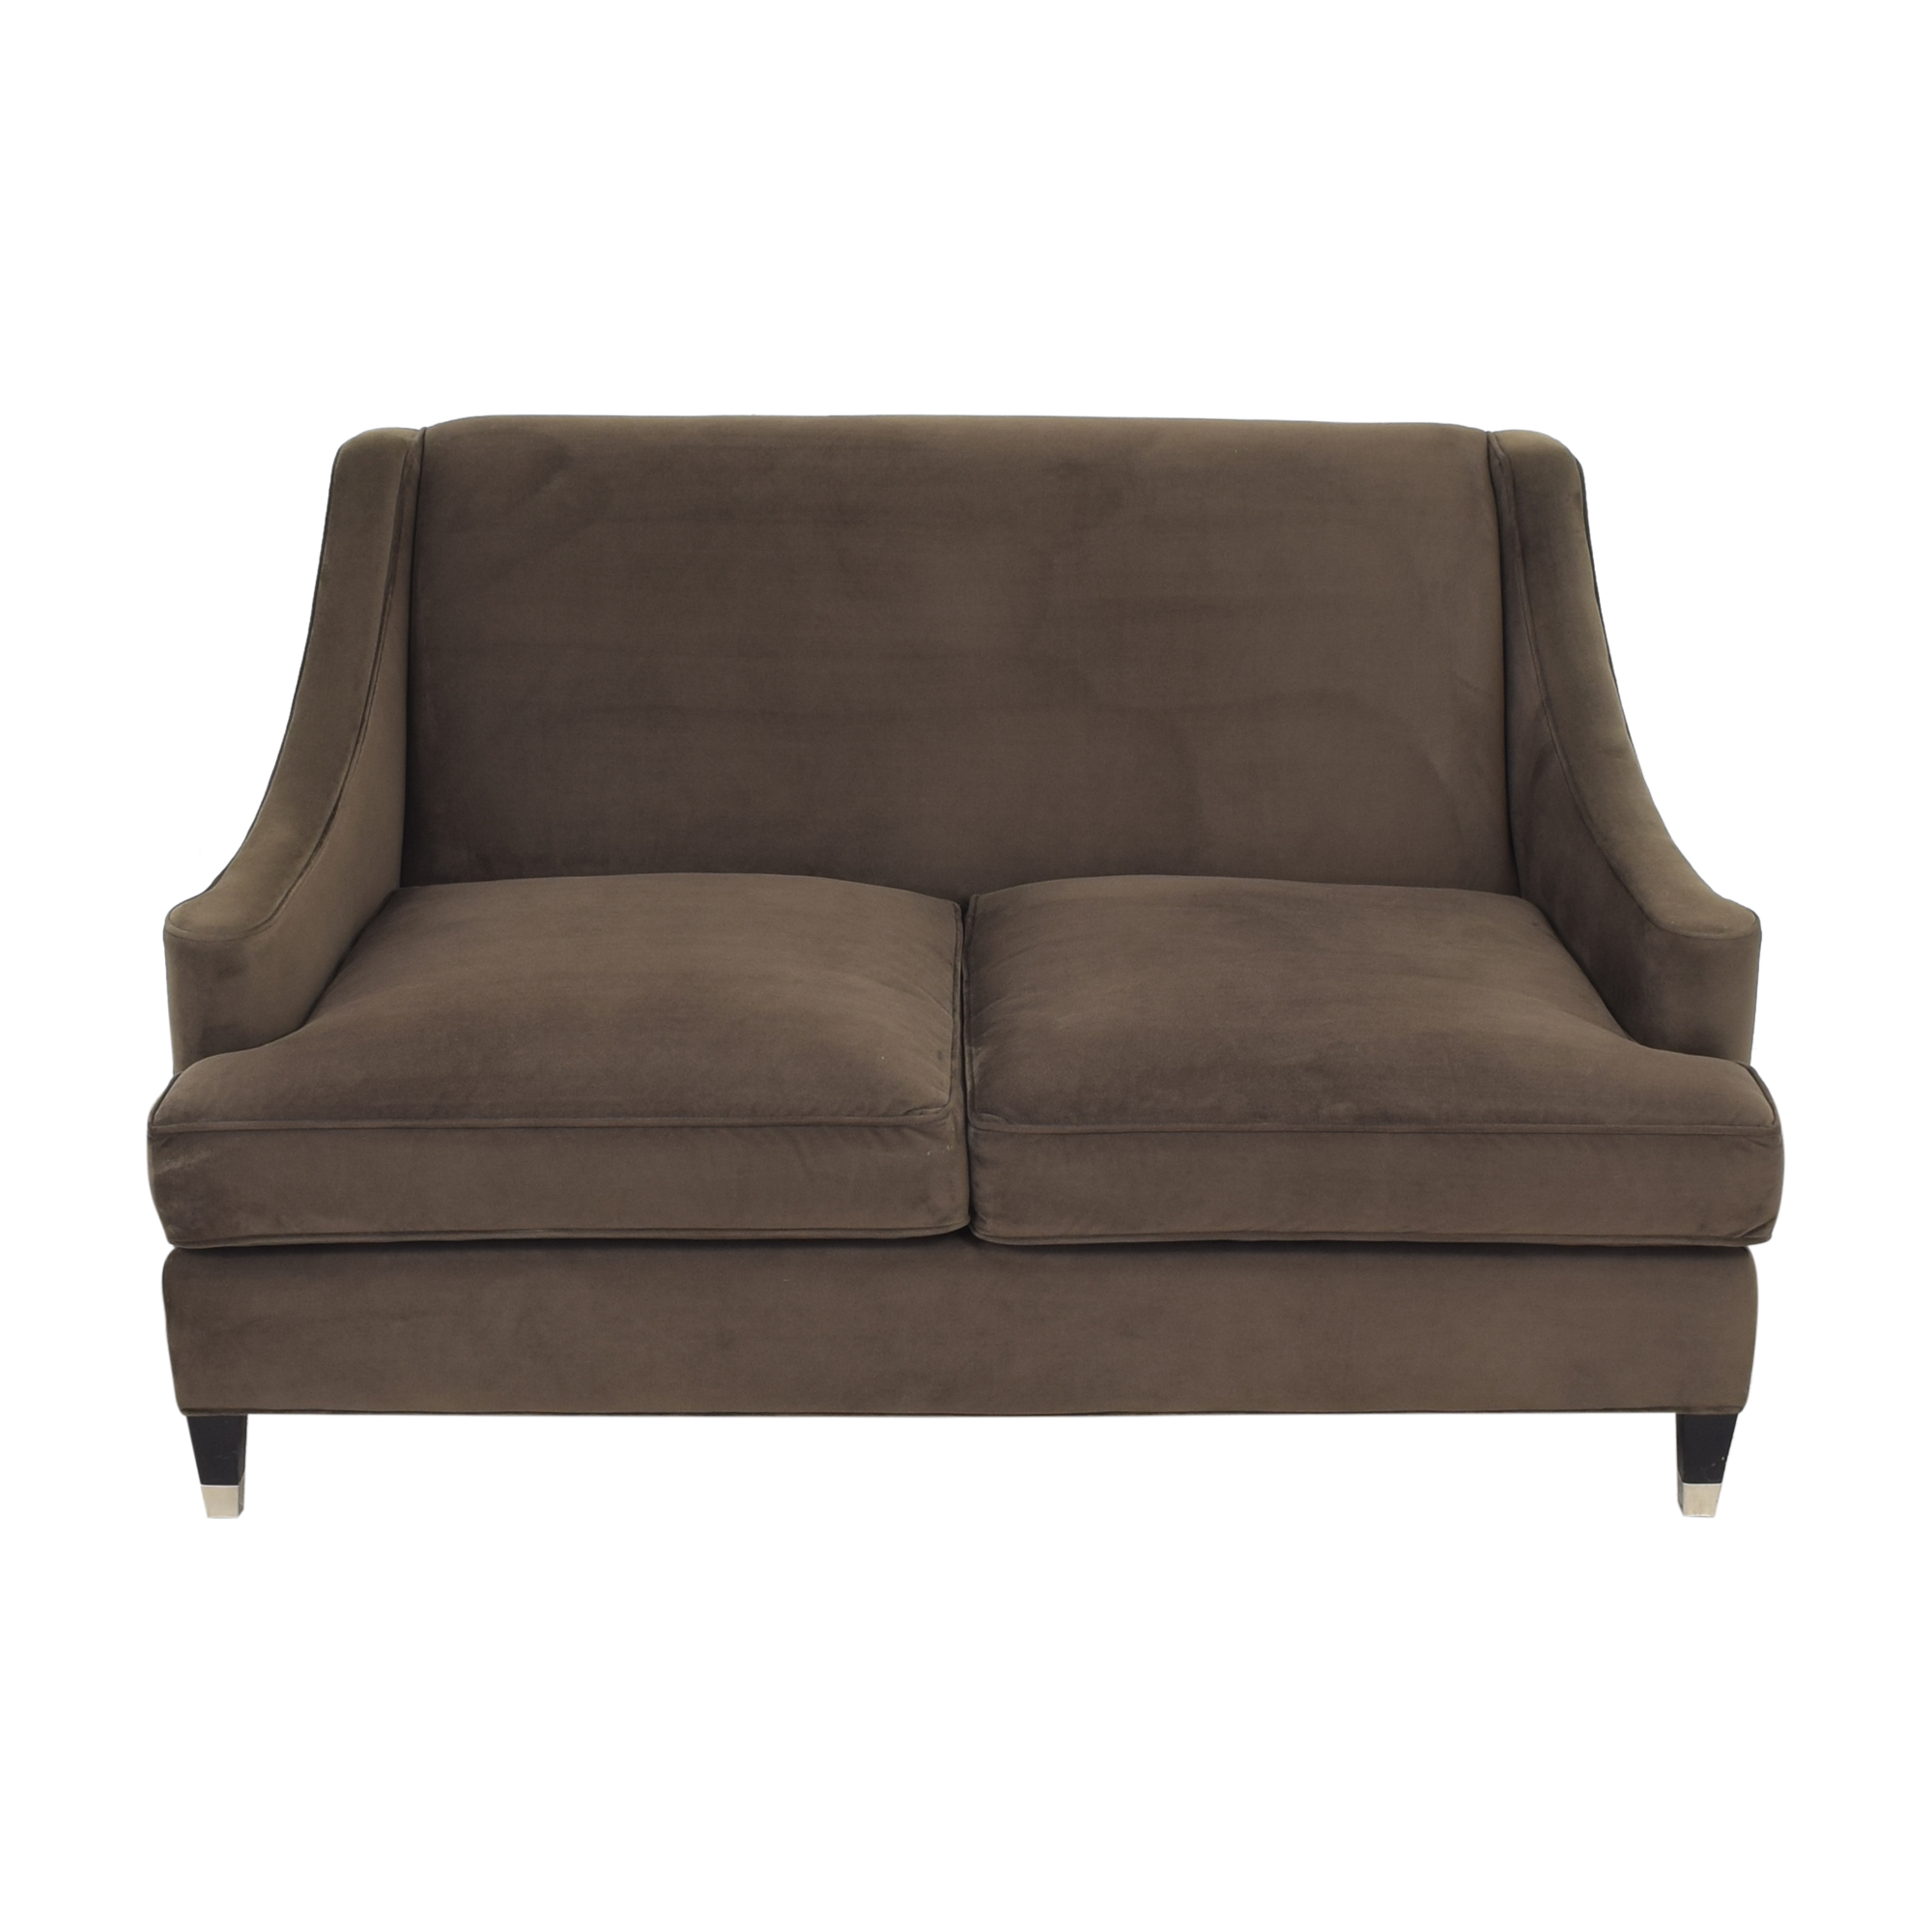 Room & Board Room & Board Loring Walnut Loveseat ct